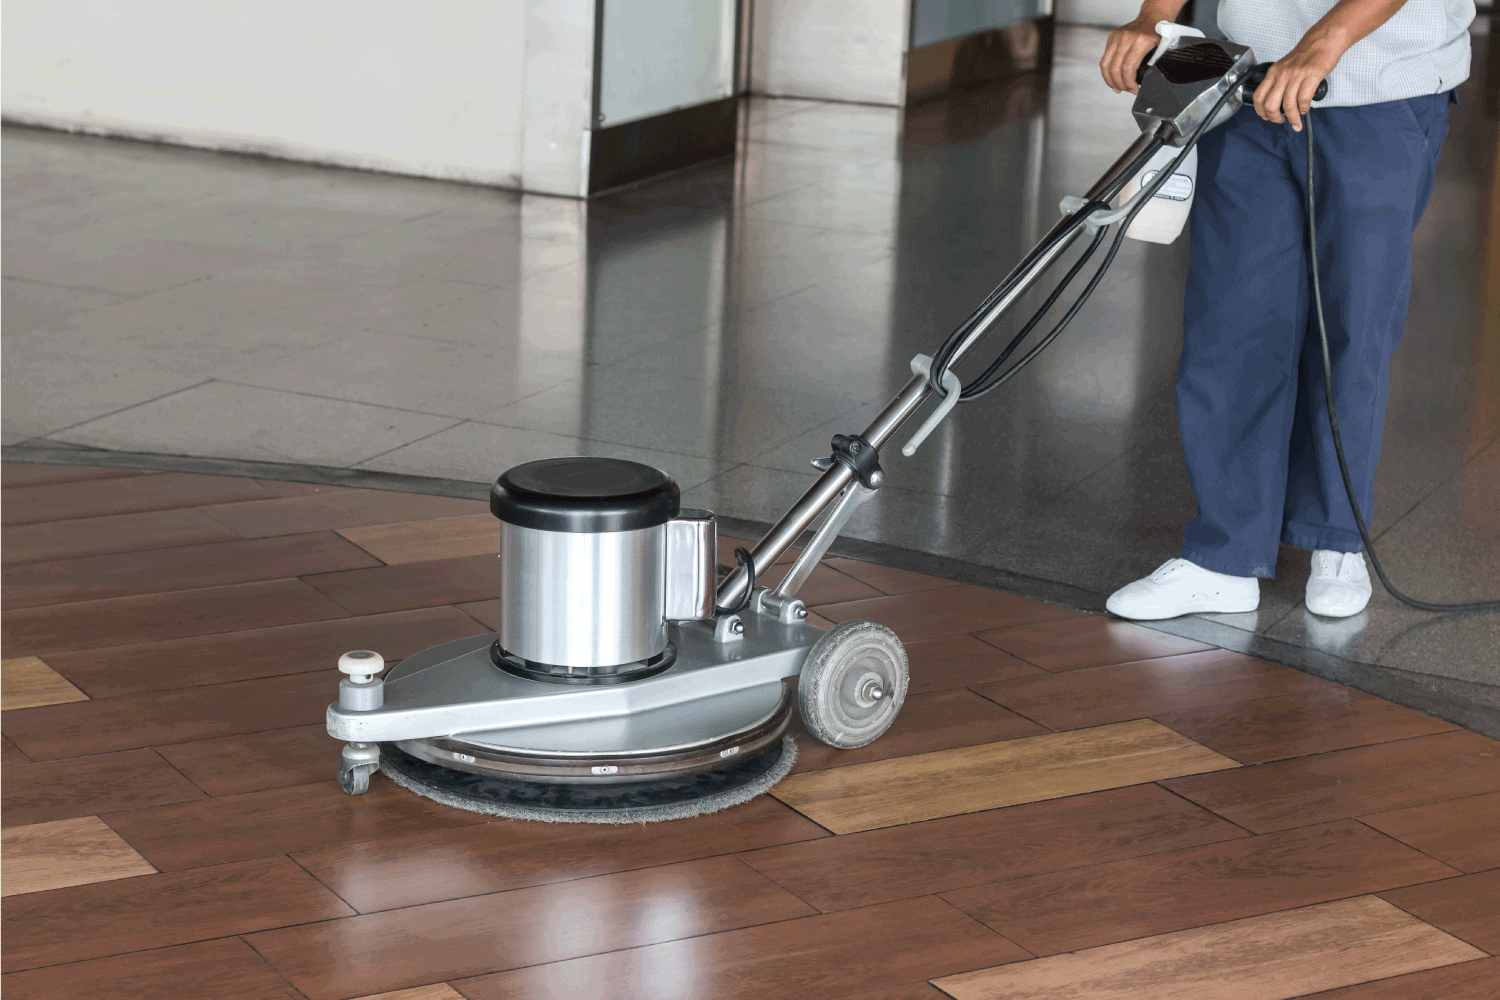 Woman cleaning the floor with polishing machine.